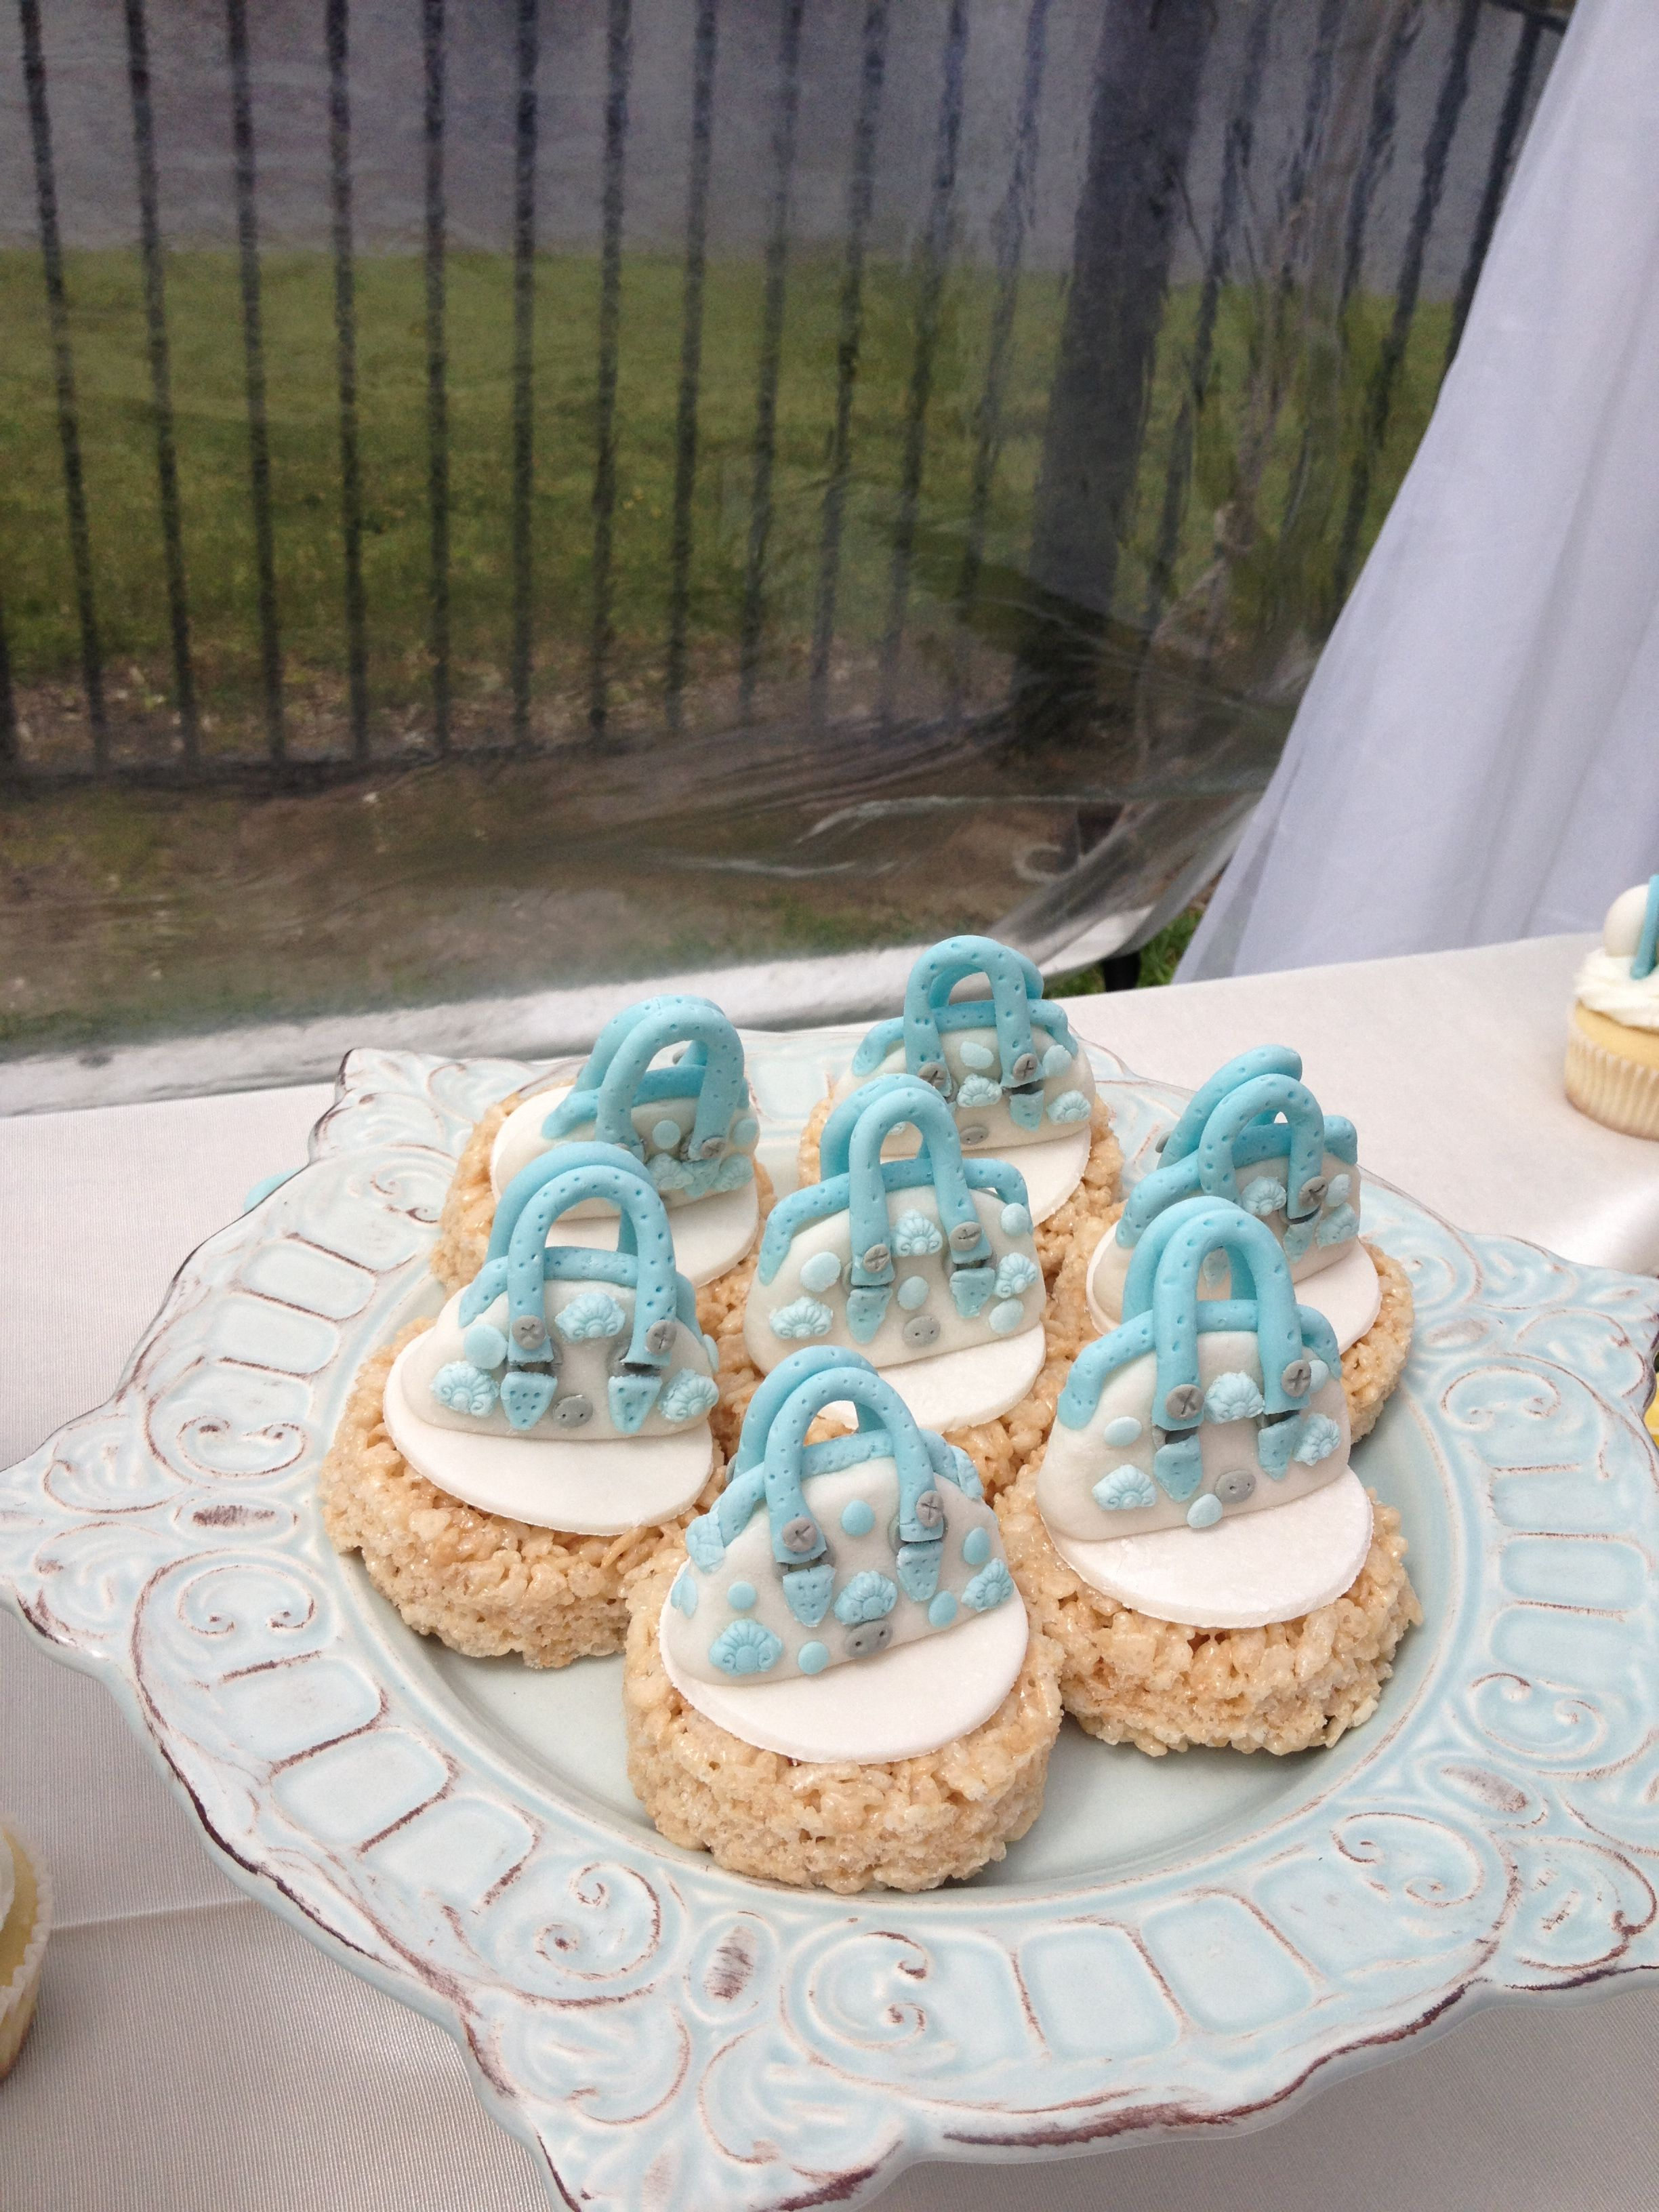 Event Planning Peacock Premier Events Tent u0026 Draping Tents N Events Floral Smarty Plants  Linens Chairs China Atlas Party Rentals Baloons Palm ... & Fabulous Baby Shower for a Fabulous Family!Event Planning: Peacock ...